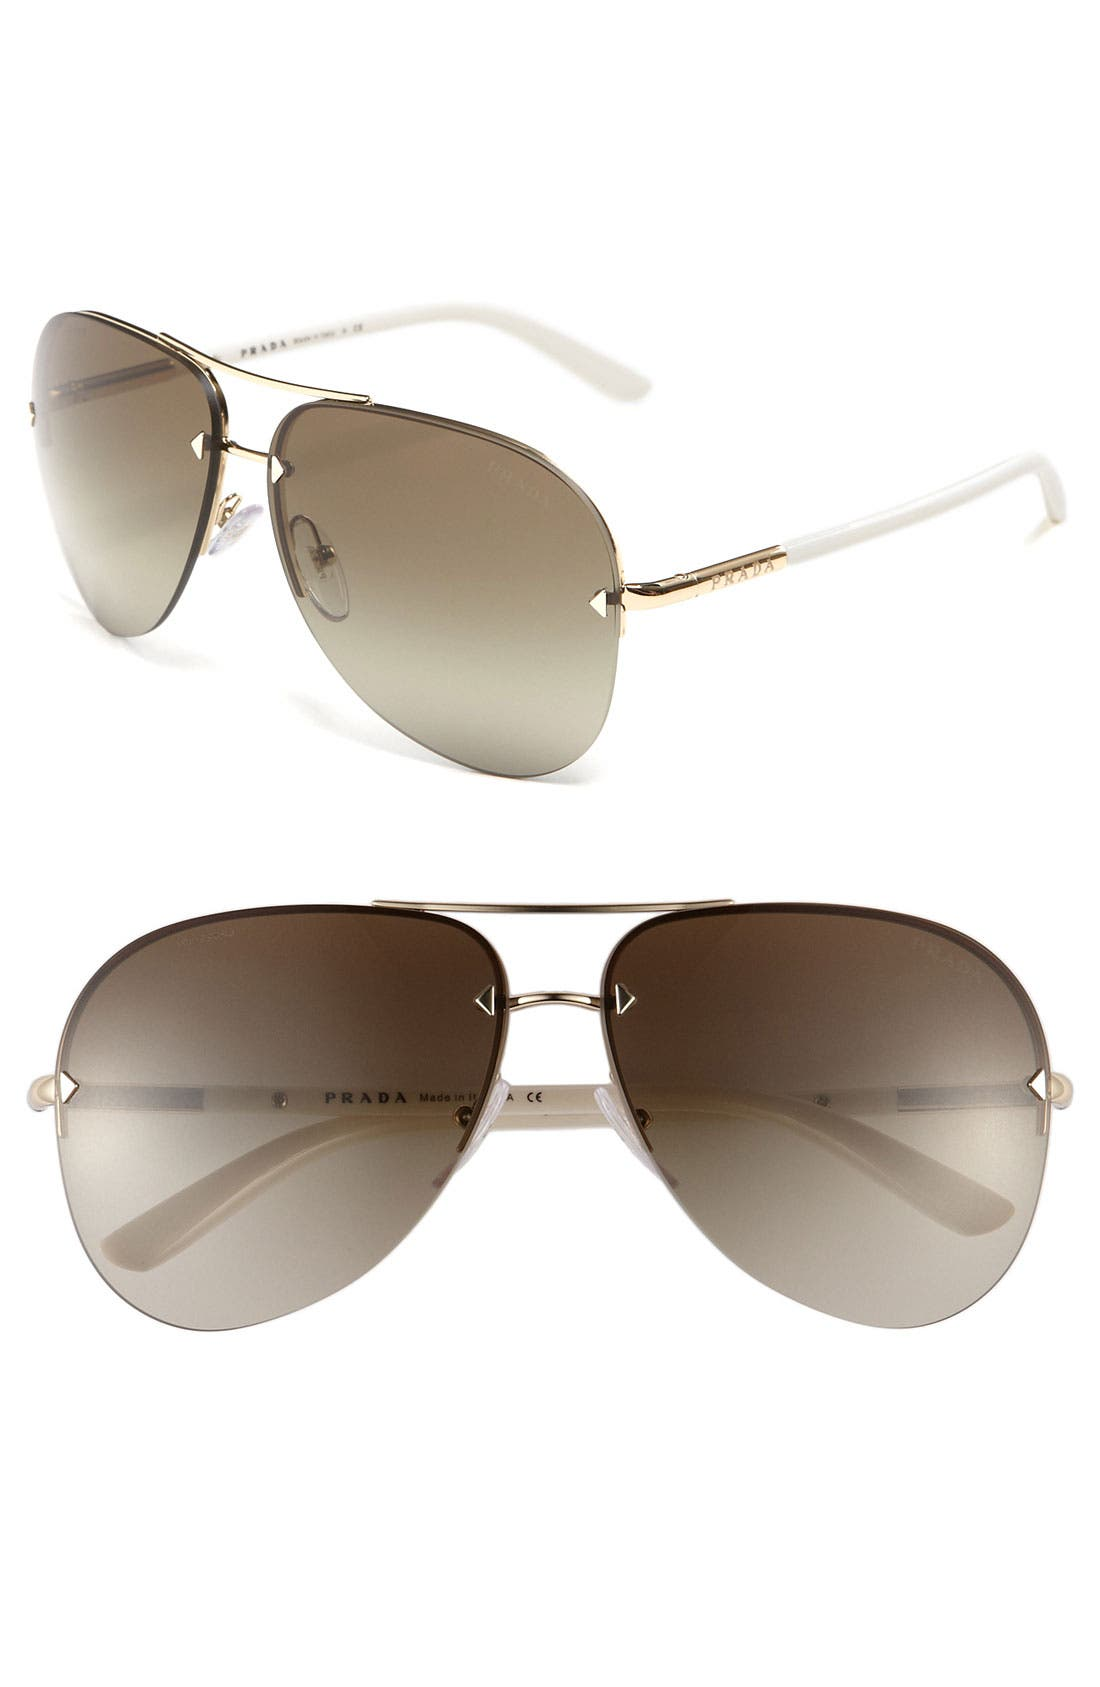 Main Image - Prada 61mm Aviator Sunglasses